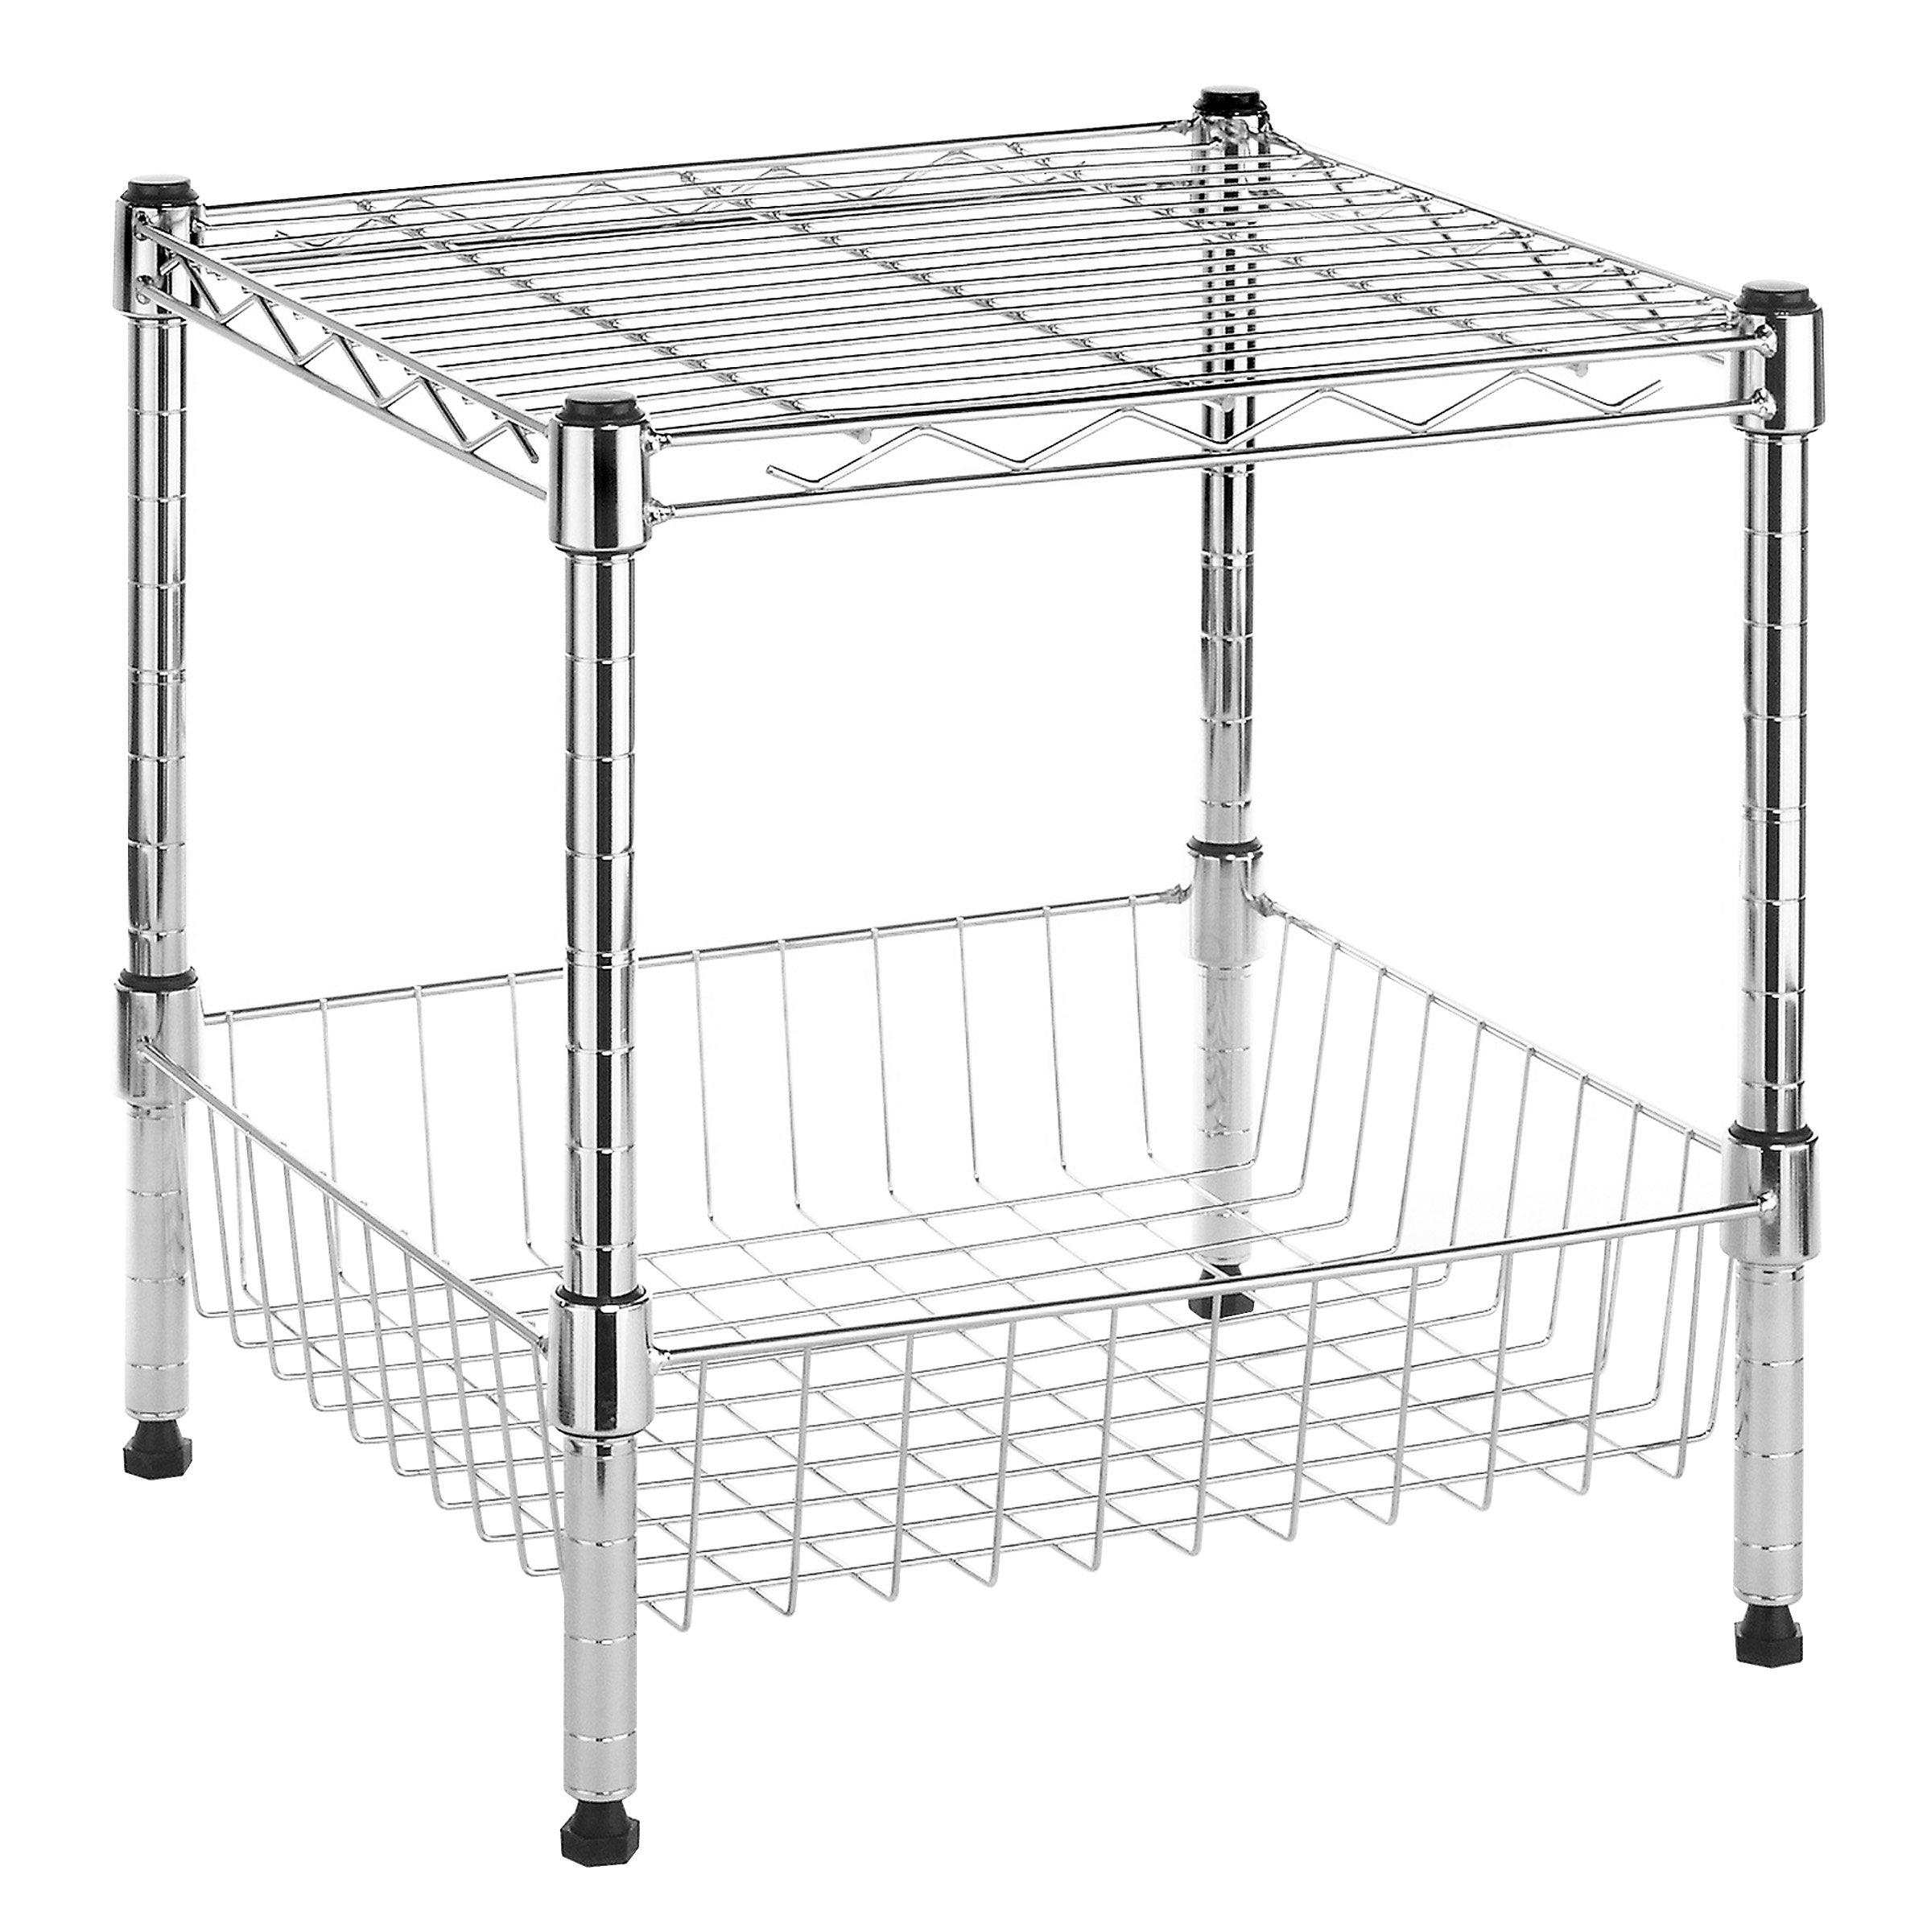 Whitmor Supreme Stacking Shelf with Basket - Adjustable Home Organizer - Chrome